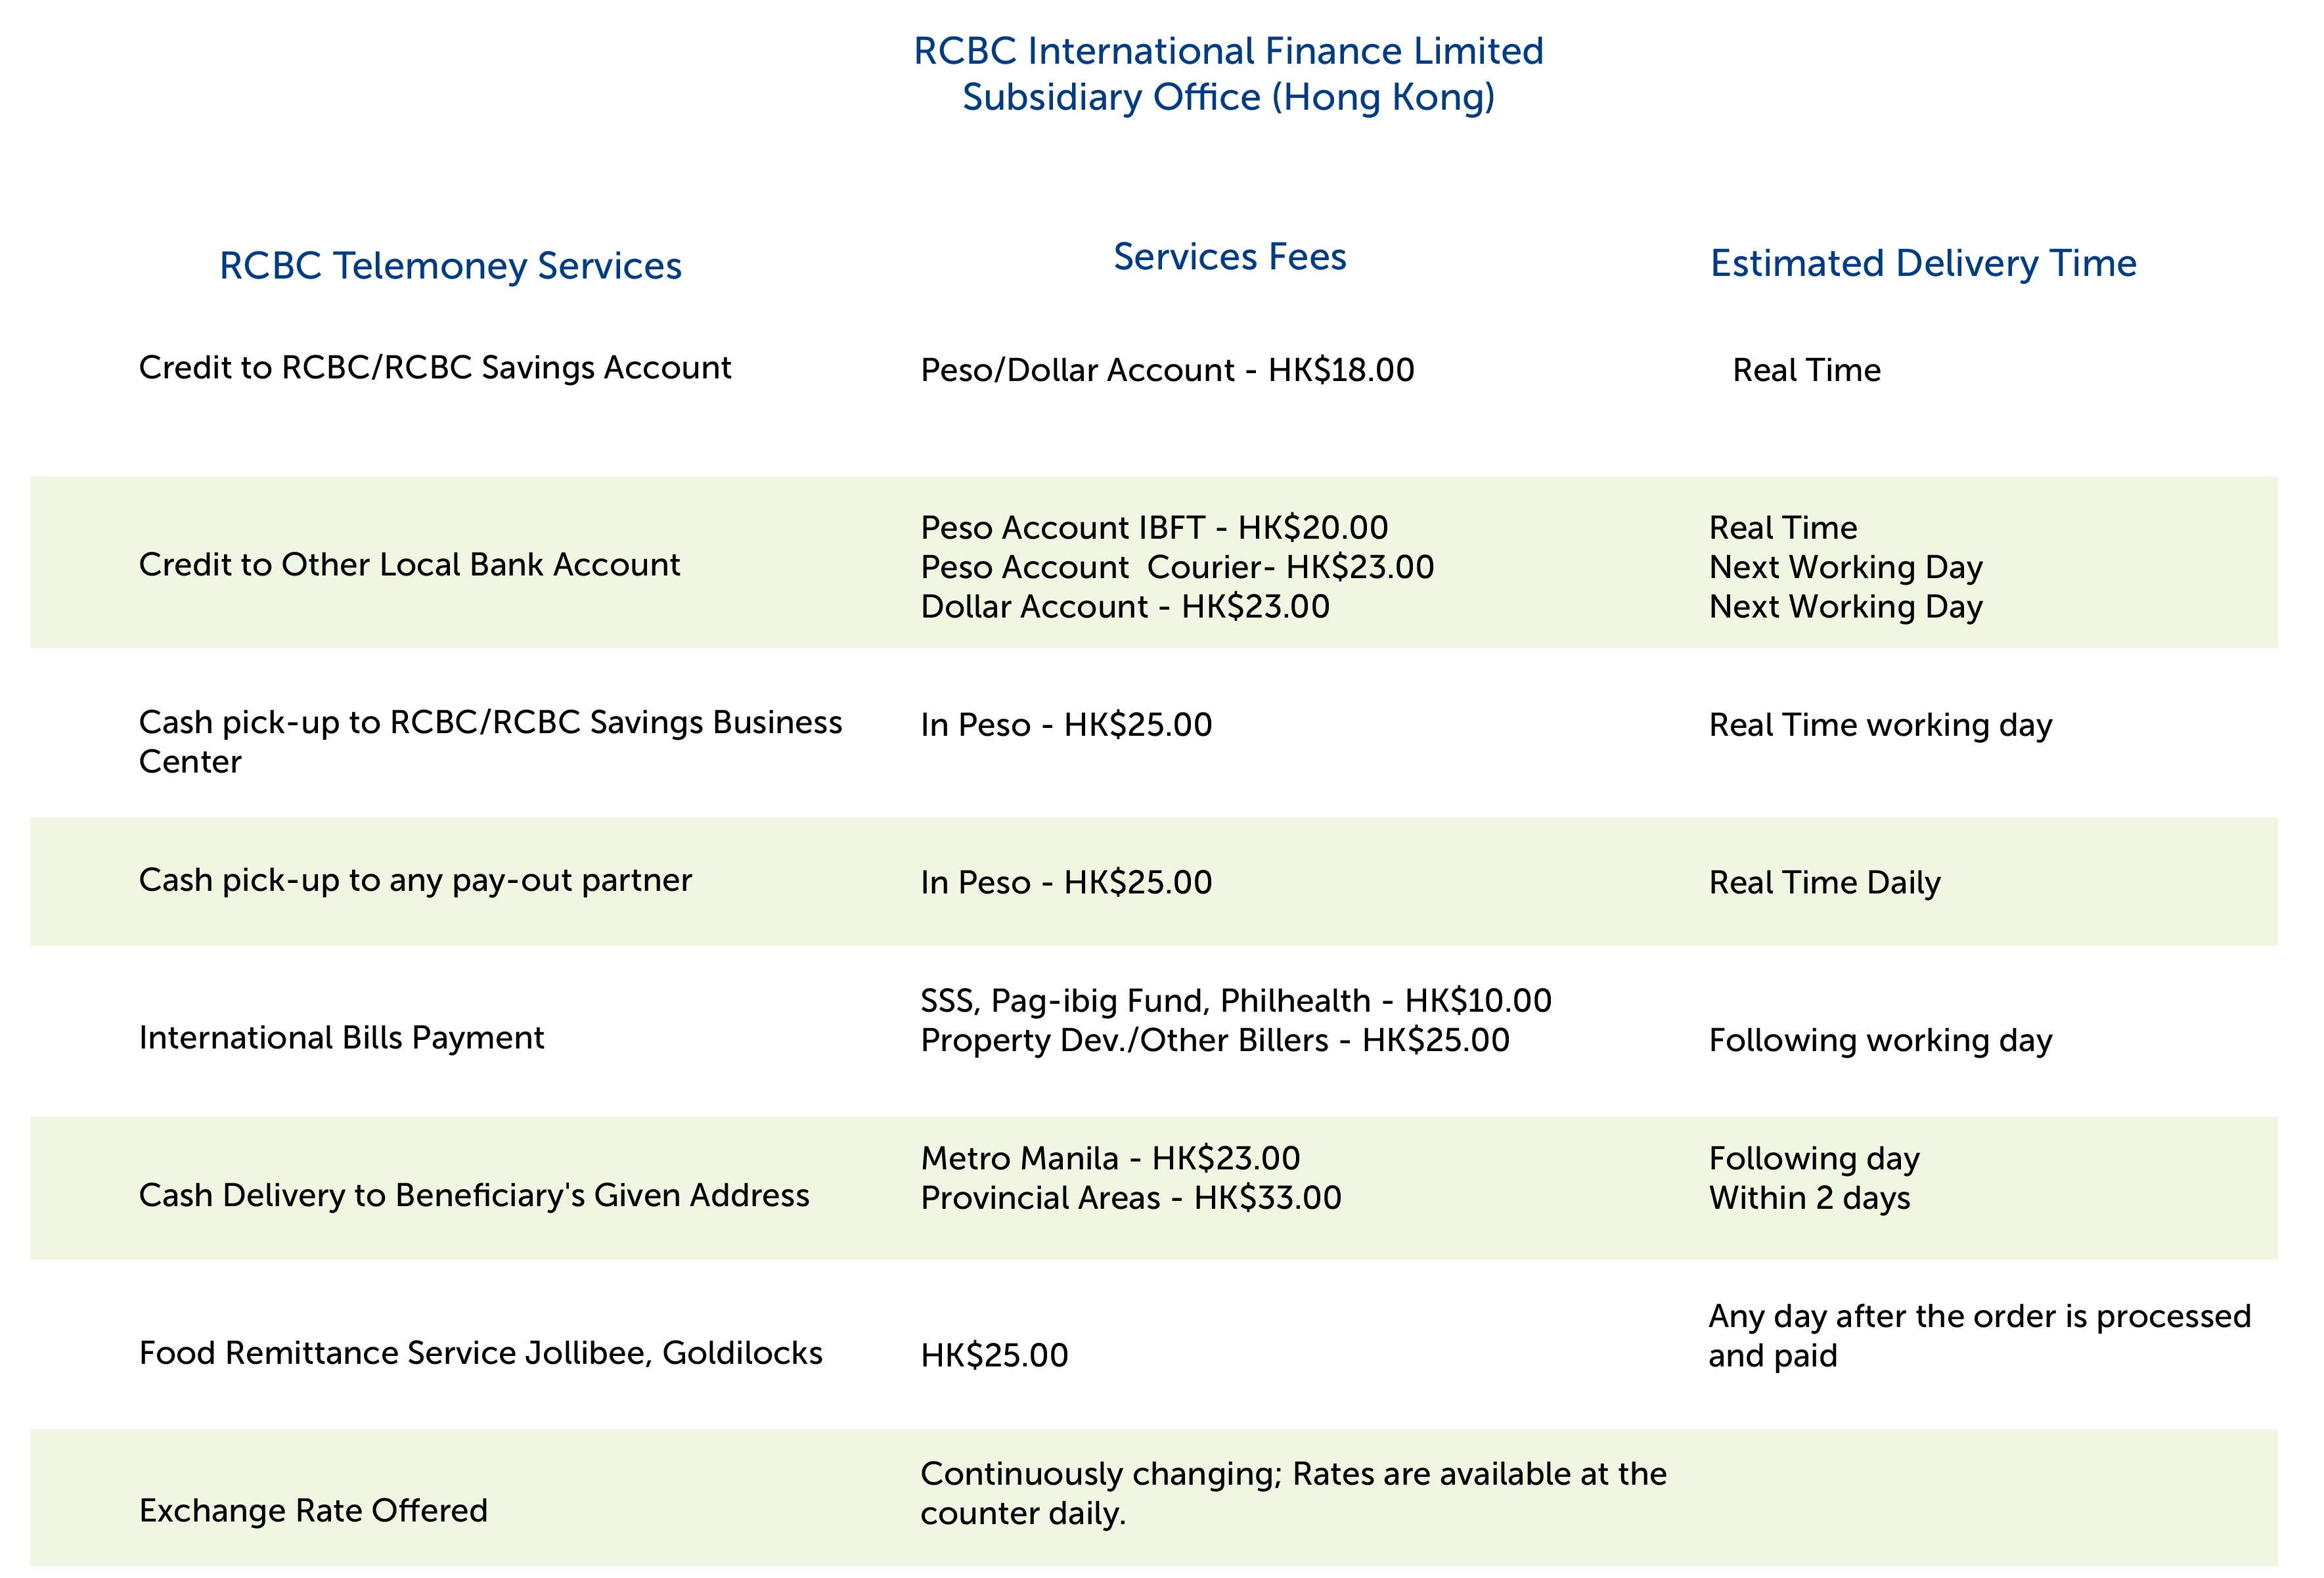 Rizal Commercial Banking Corporation Wiring Money To Foreign Bank Account Note Fees May Change Without Prior Notice